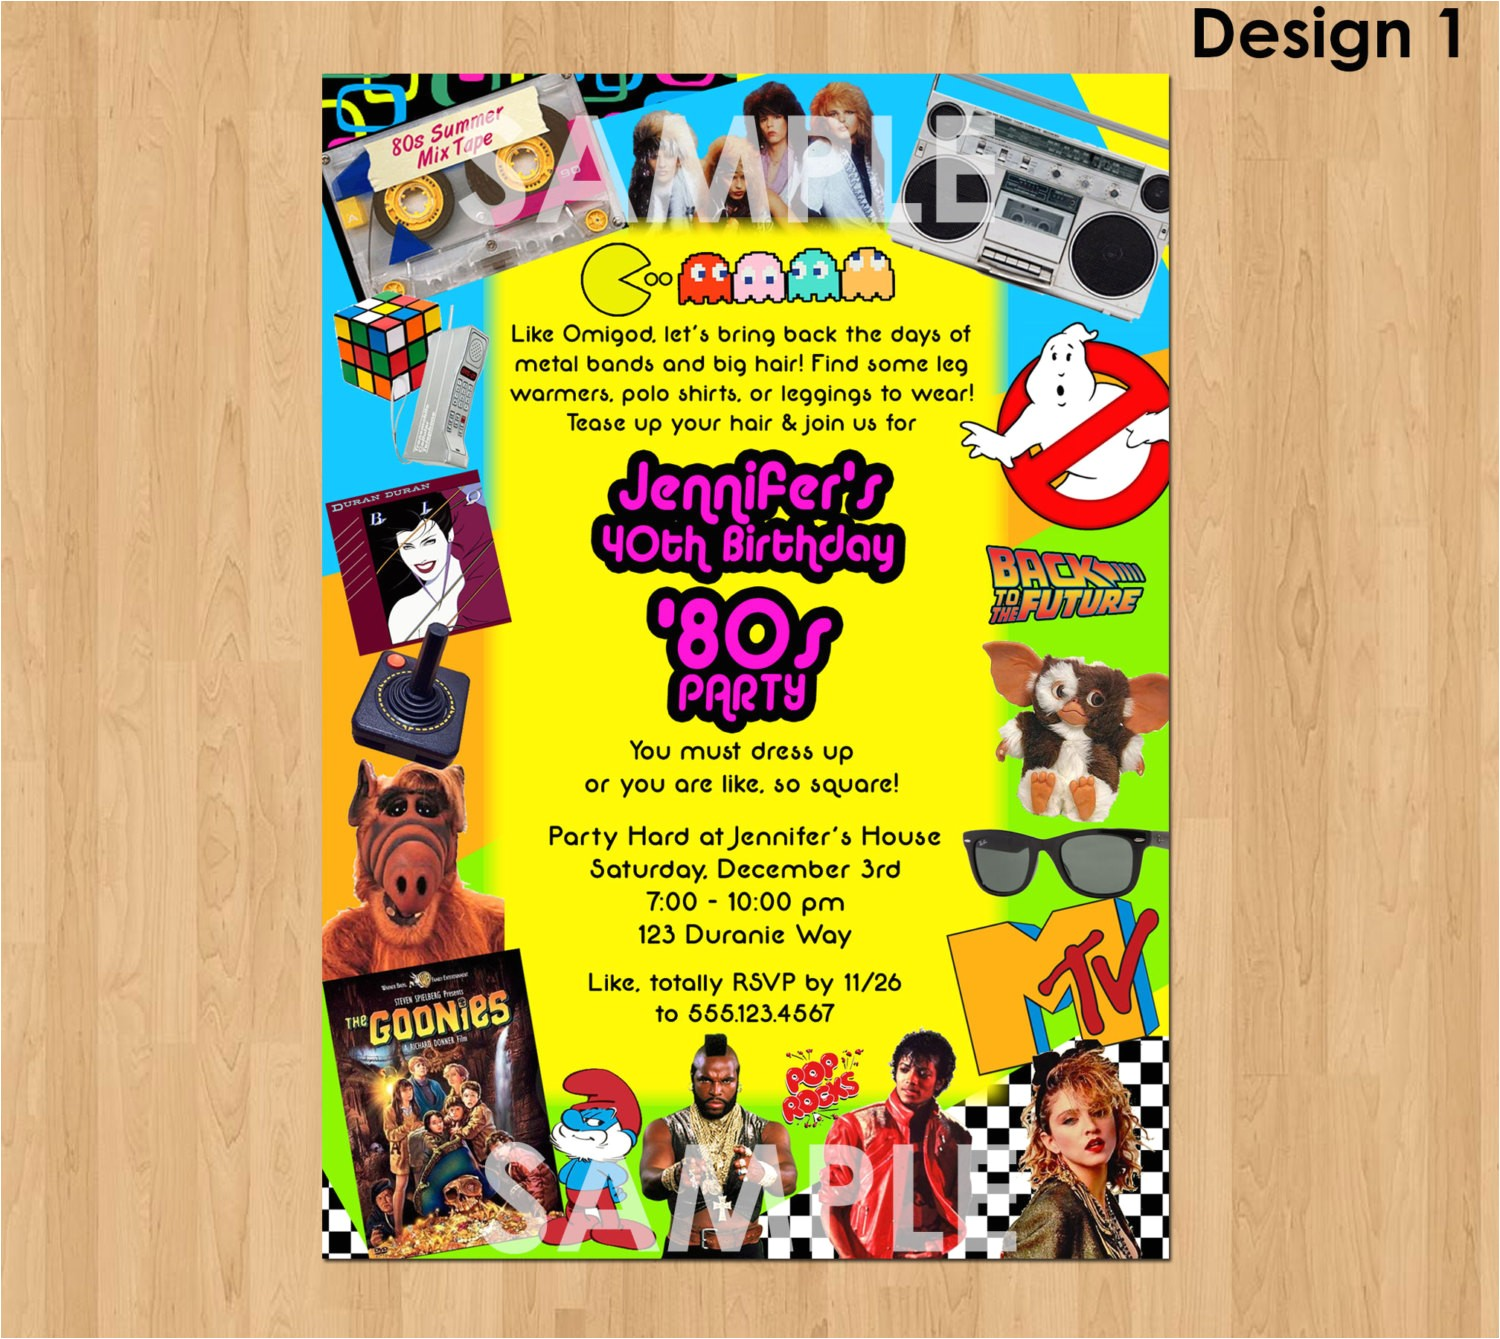 80s themed 40th Birthday Party Invitations 80s Party Invitation 80s Birthday Invitation Printable 40th